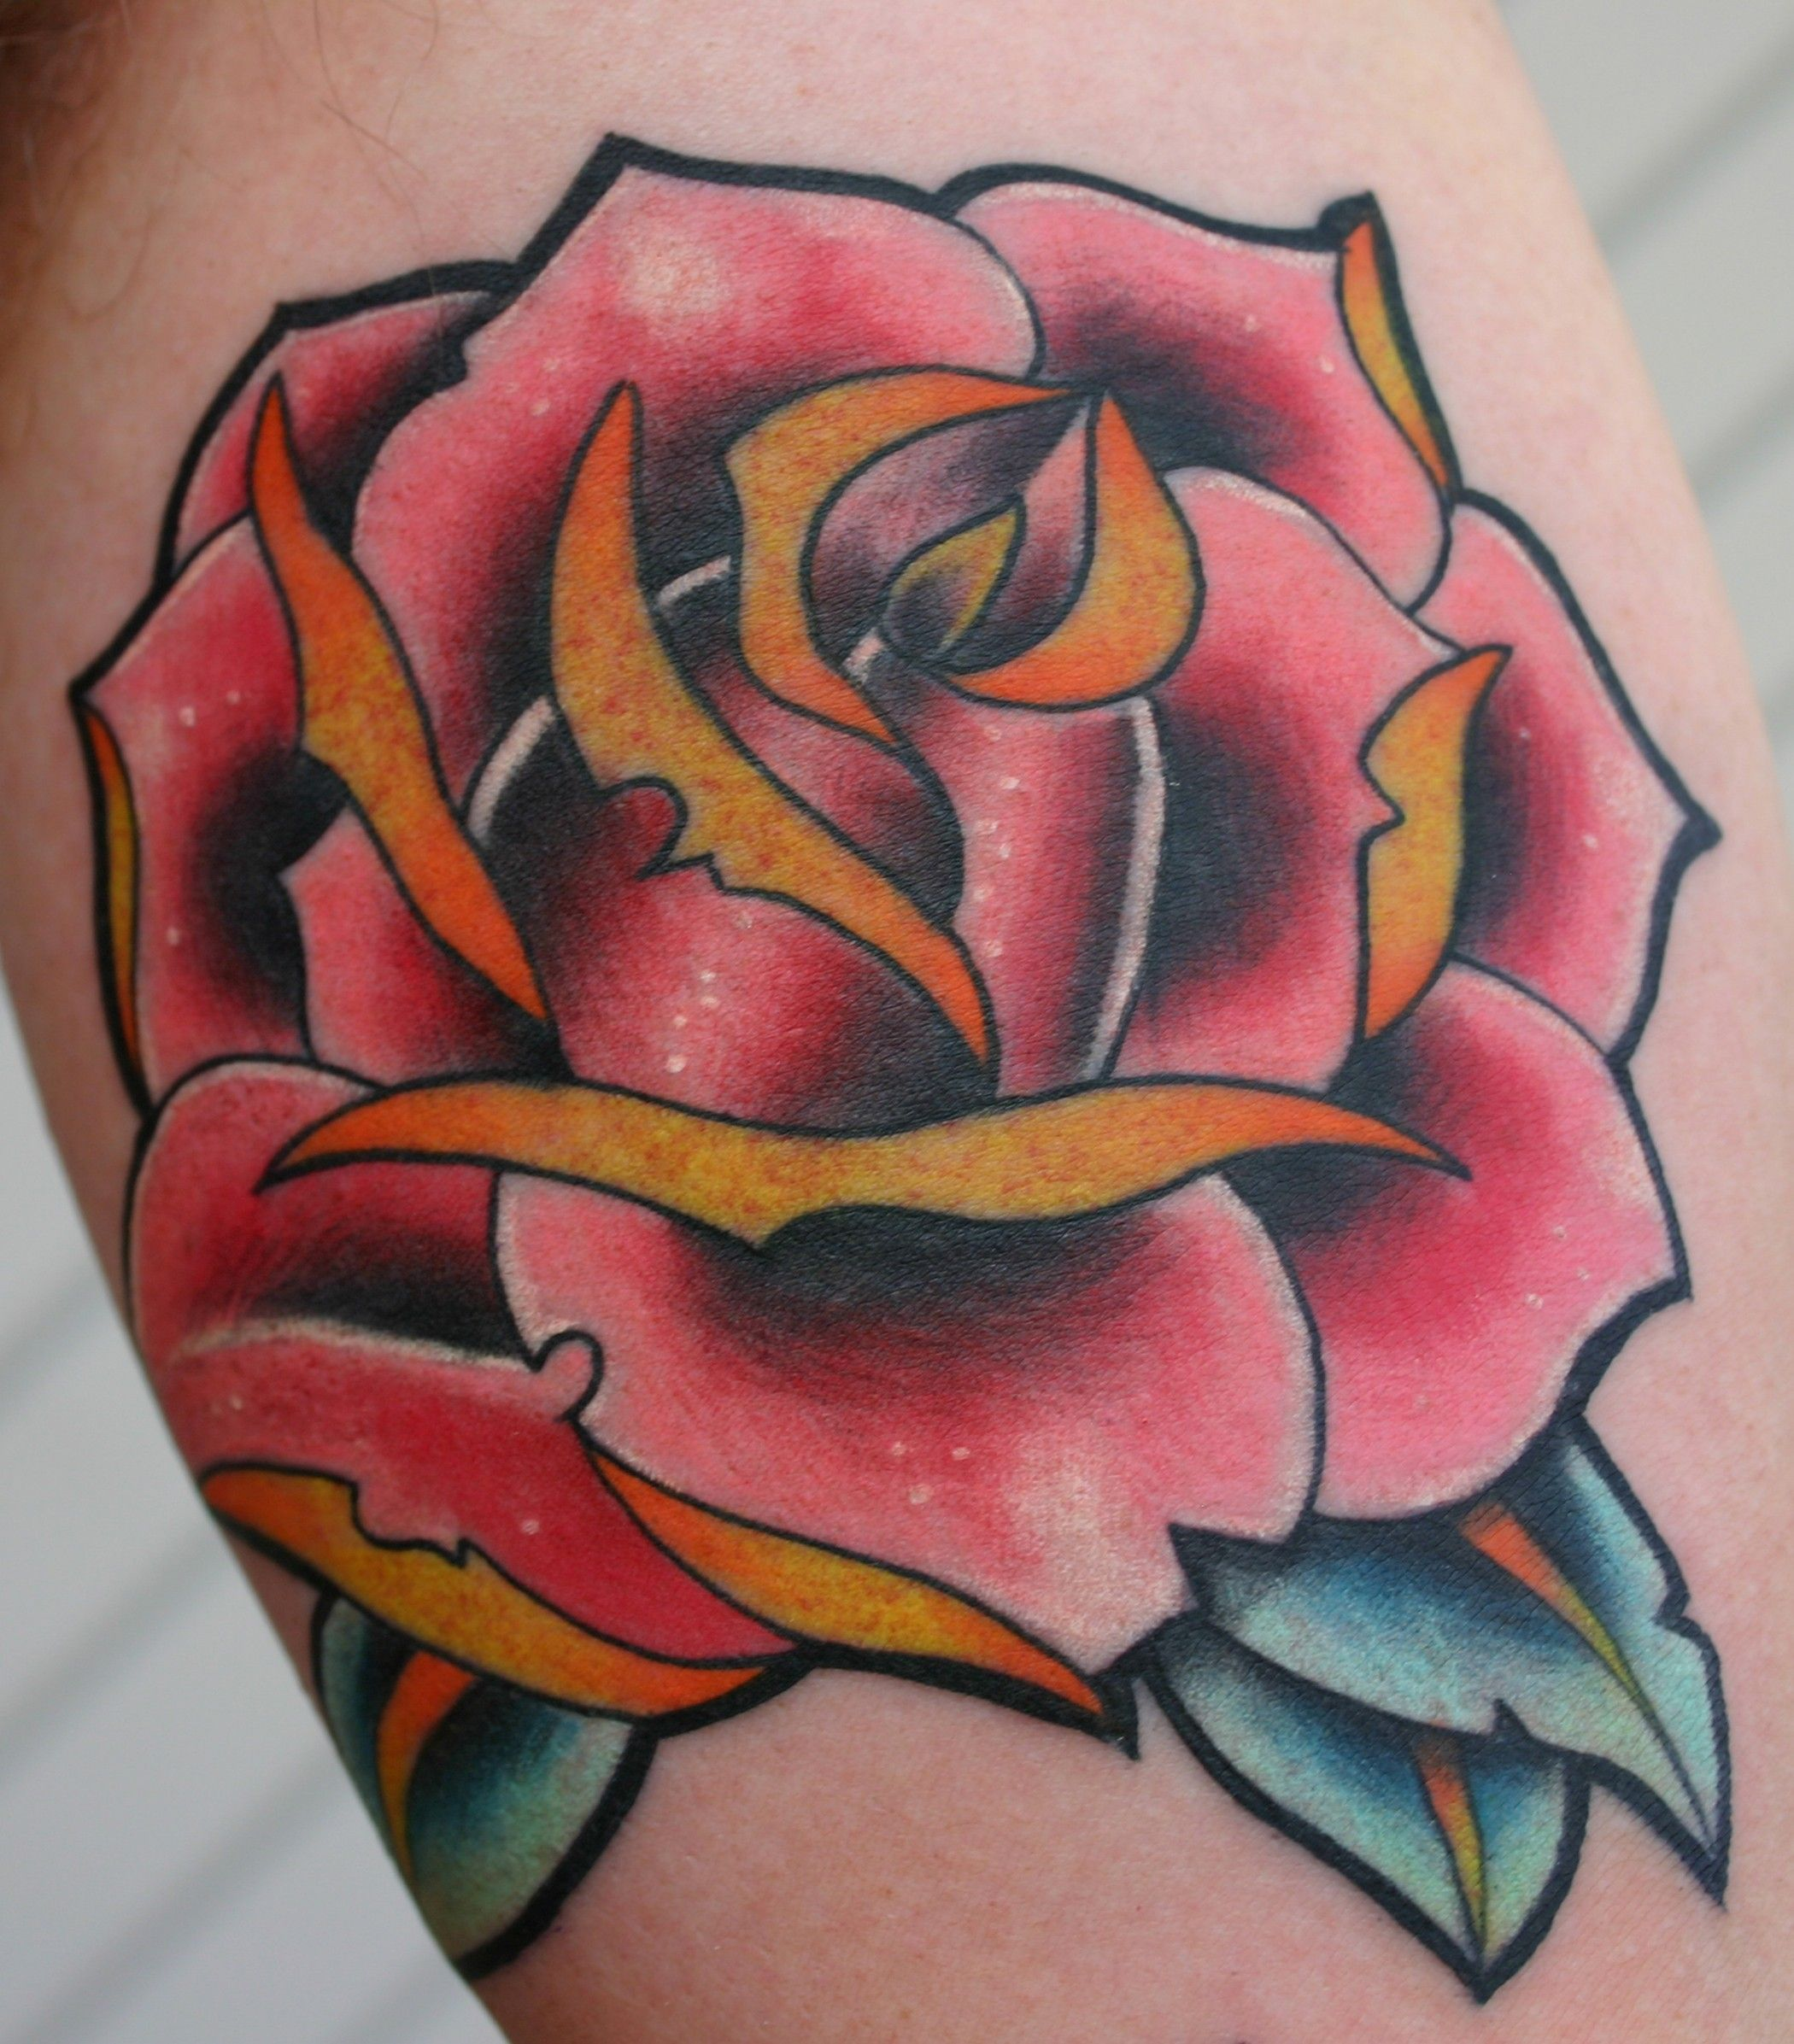 New school tattoo design - New Tattoo Design 2014 New School Rose Tattoo Similar Image And Photo In Costum Tatto0